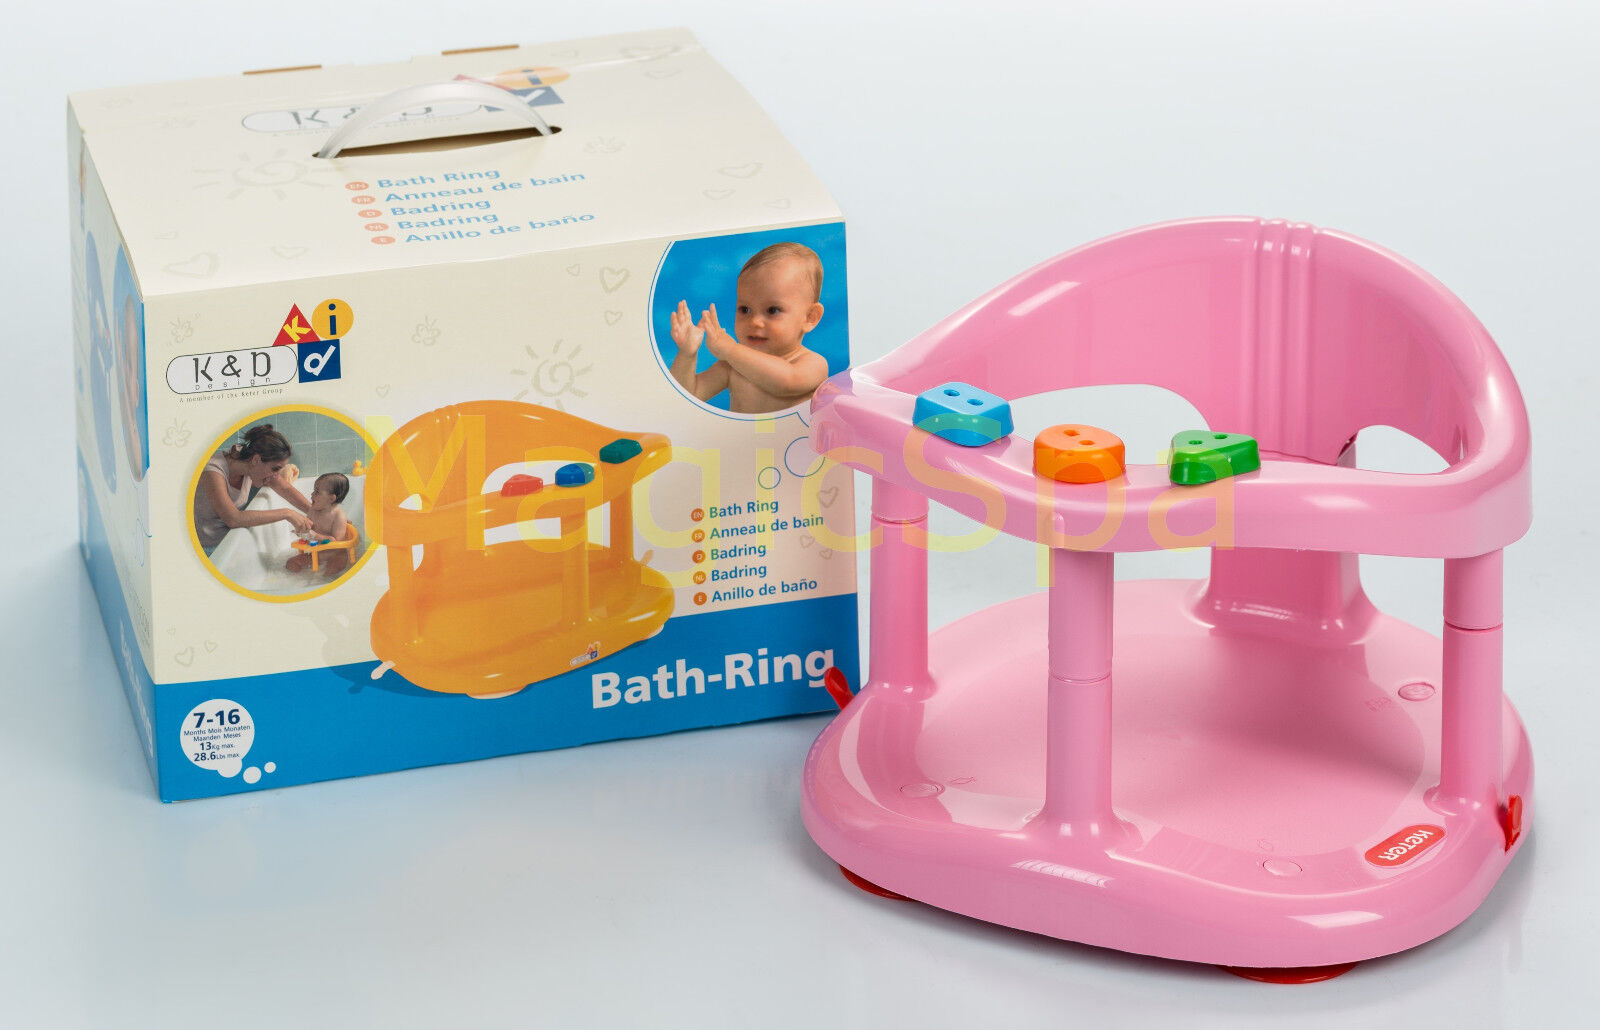 baby bath chair mothercare swivel to get into bathtub infant tub ring seat keter pink fast shipping